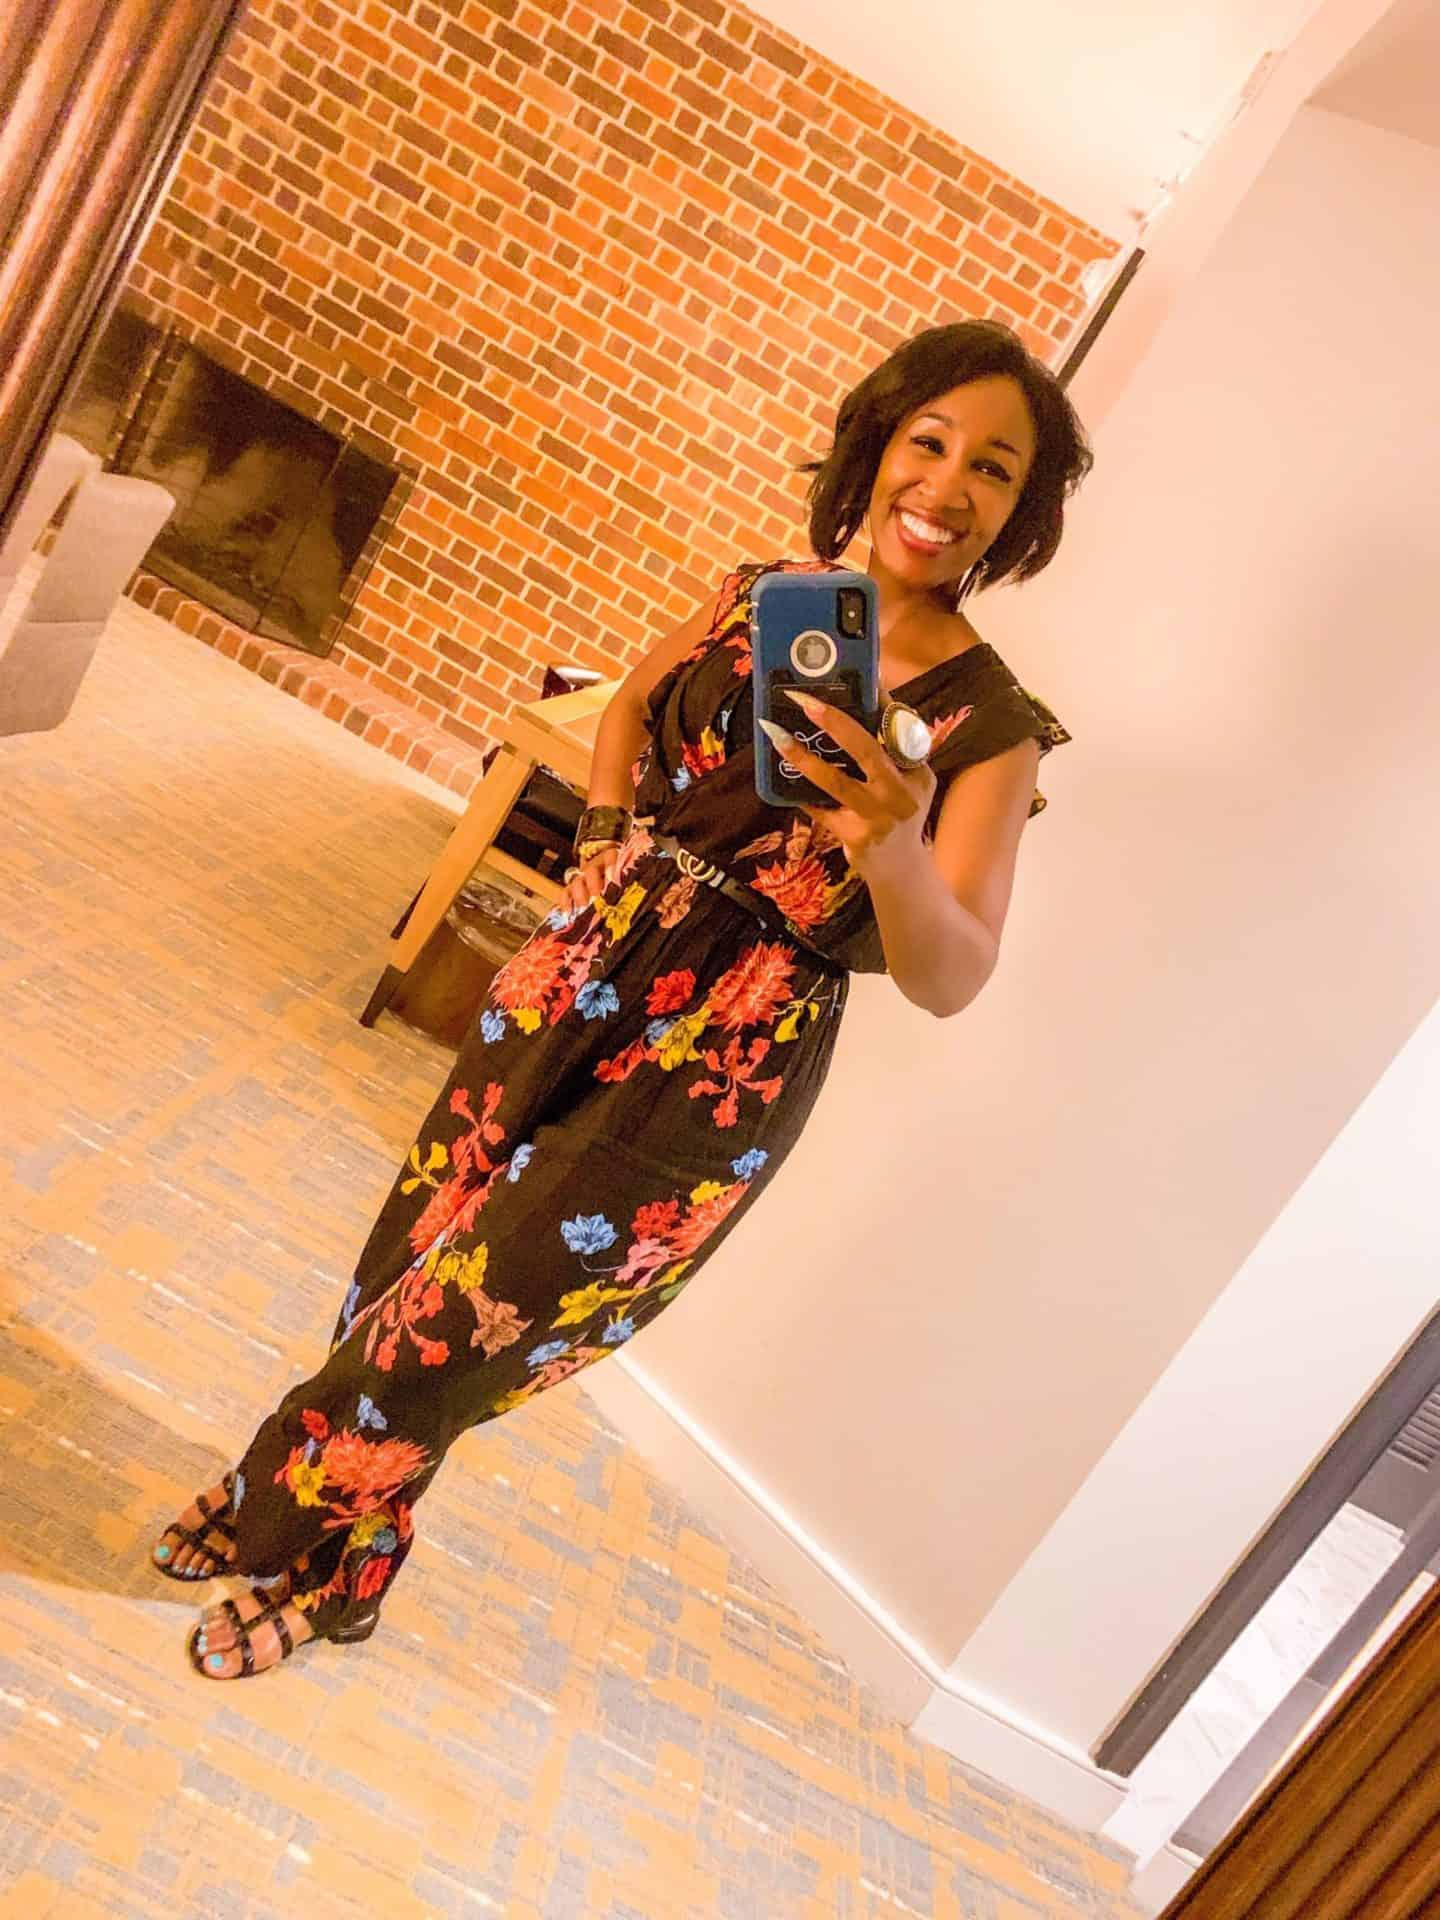 Shaunda Necole- The Secrets Instagram Influencers Use To Achieve Picture Perfect Poses- Even In Poor Lighting- Selfie mode in Snapchat